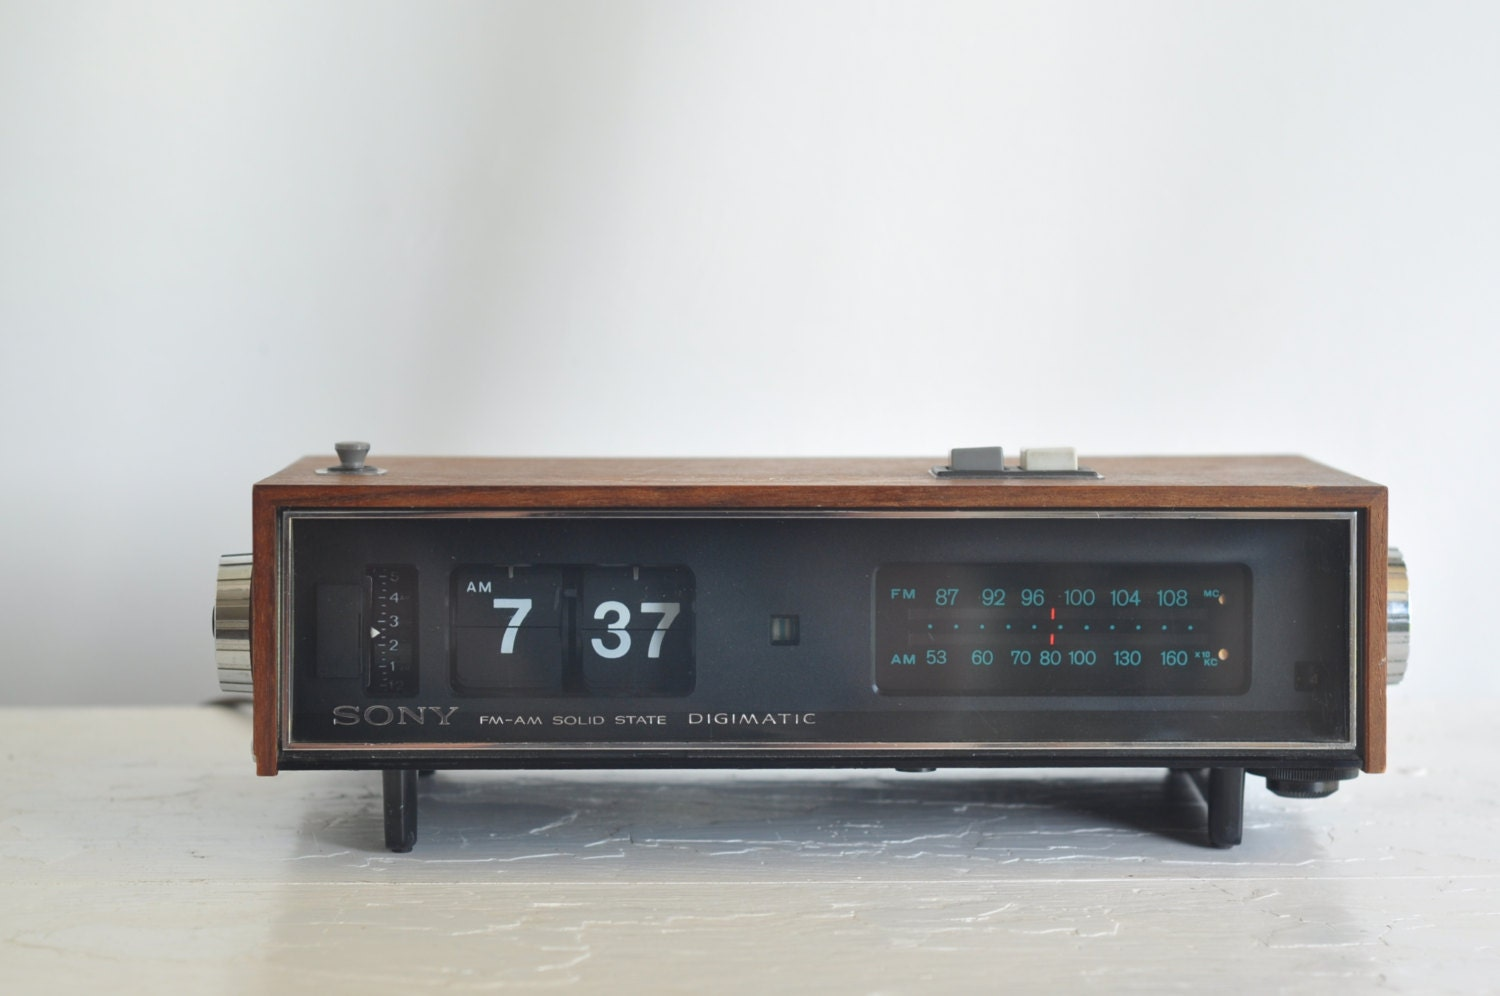 sony 1968 vintage clock radio alarm clock by vintagemindedmaven. Black Bedroom Furniture Sets. Home Design Ideas